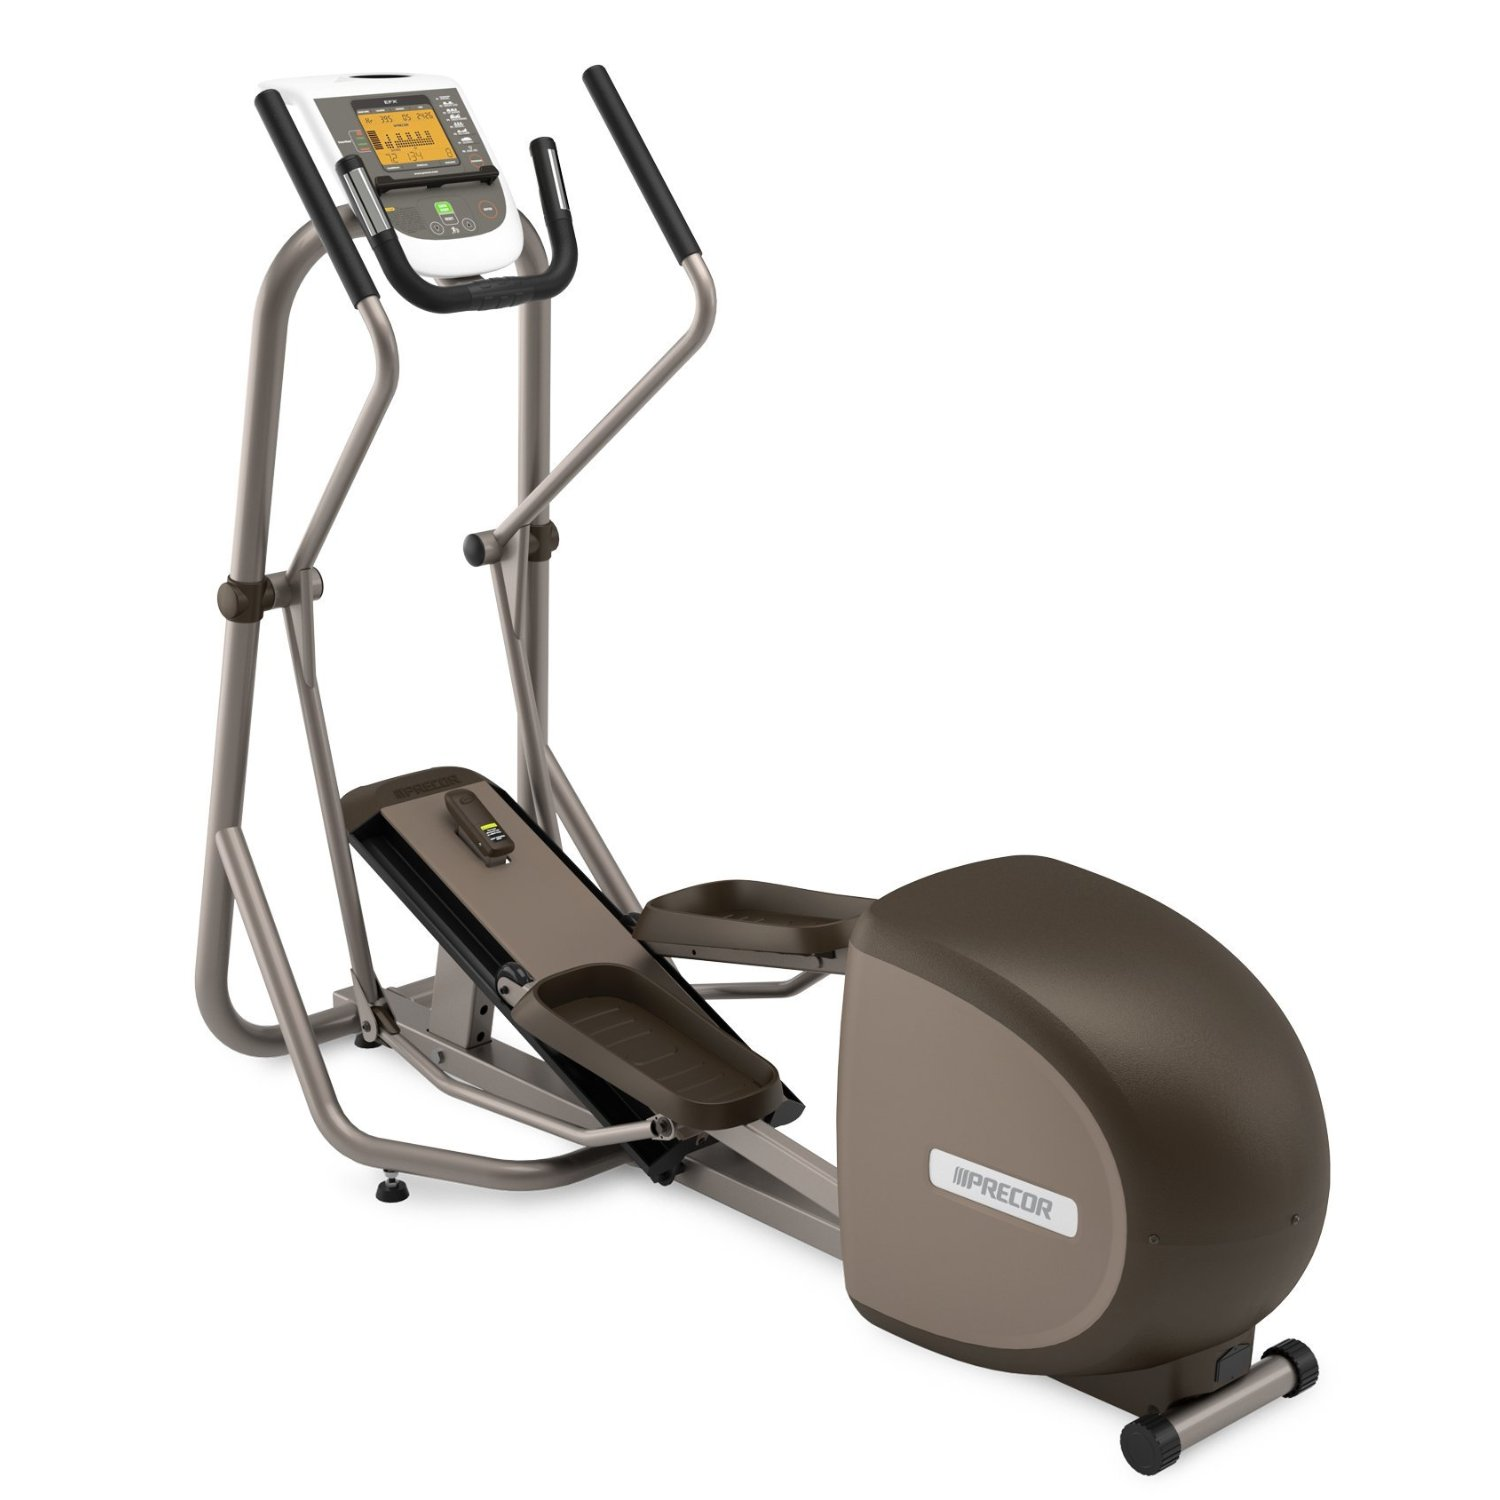 Precor EFX 5.23 Elliptical Fitness Crosstrainer Review